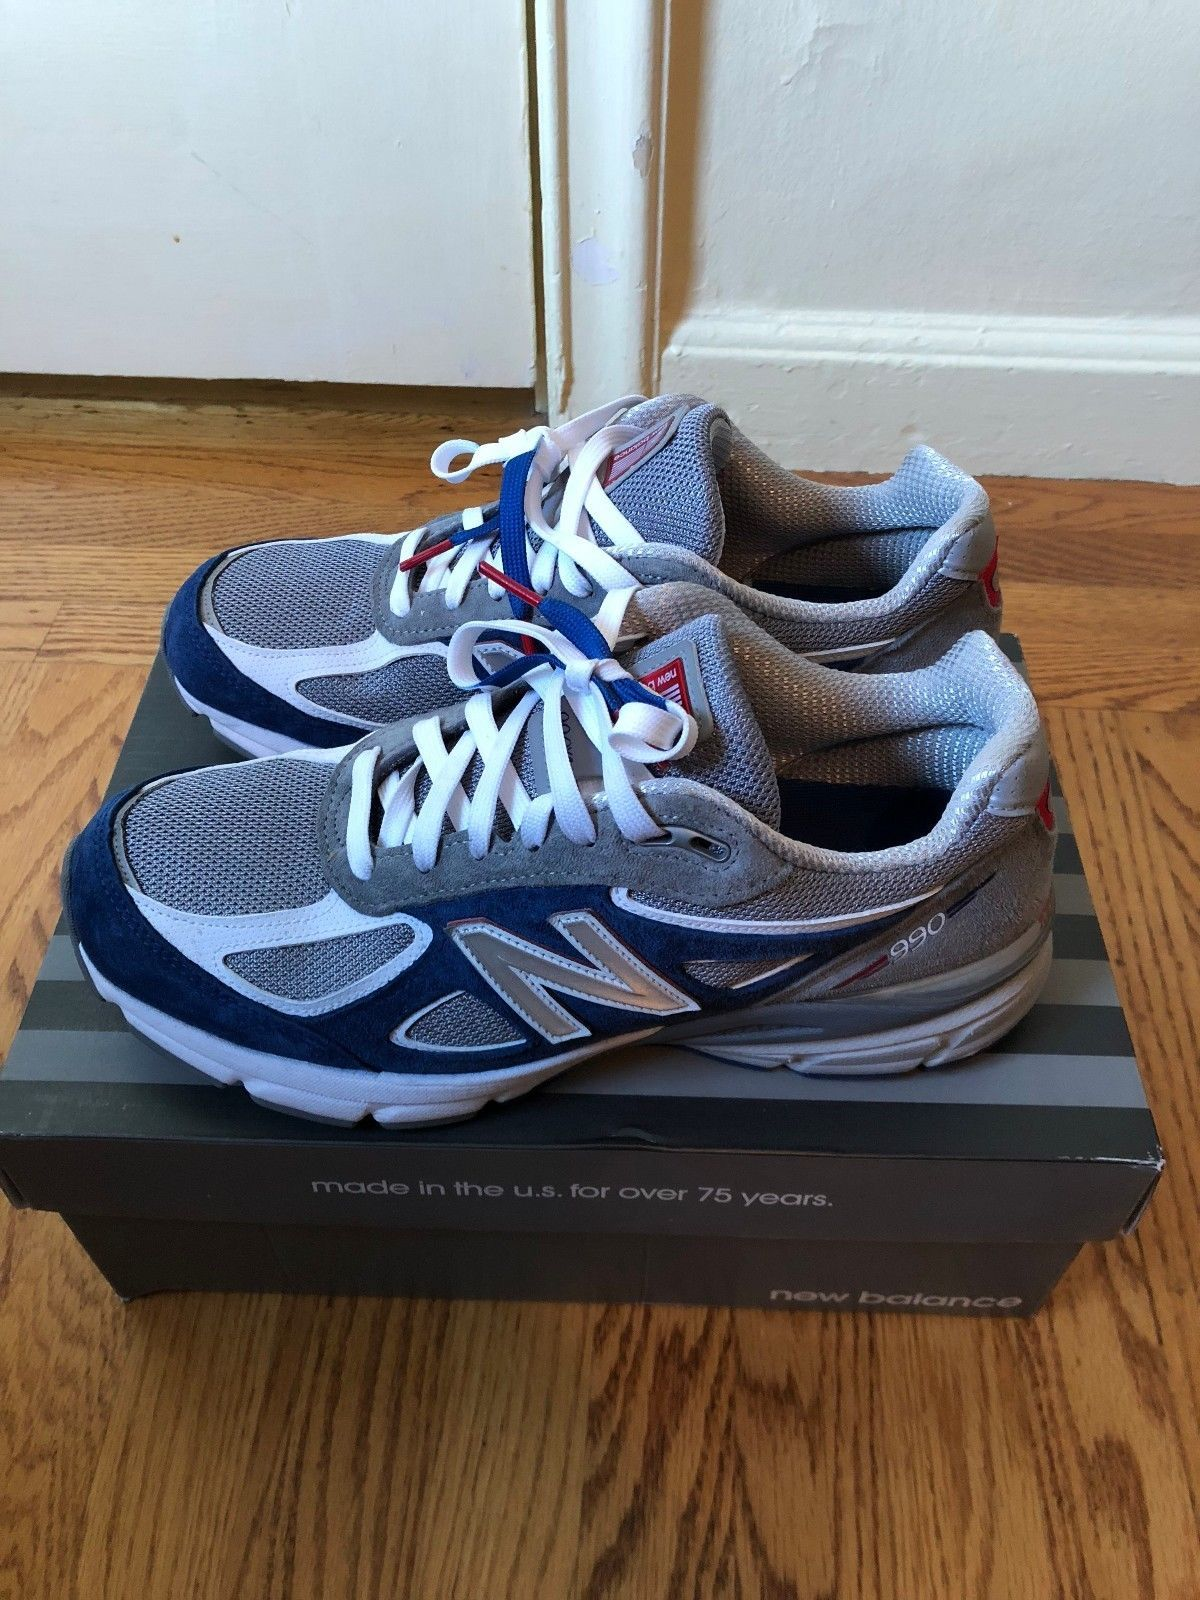 official photos 40391 31dbd Balance 990v4 Villa sz 9.5